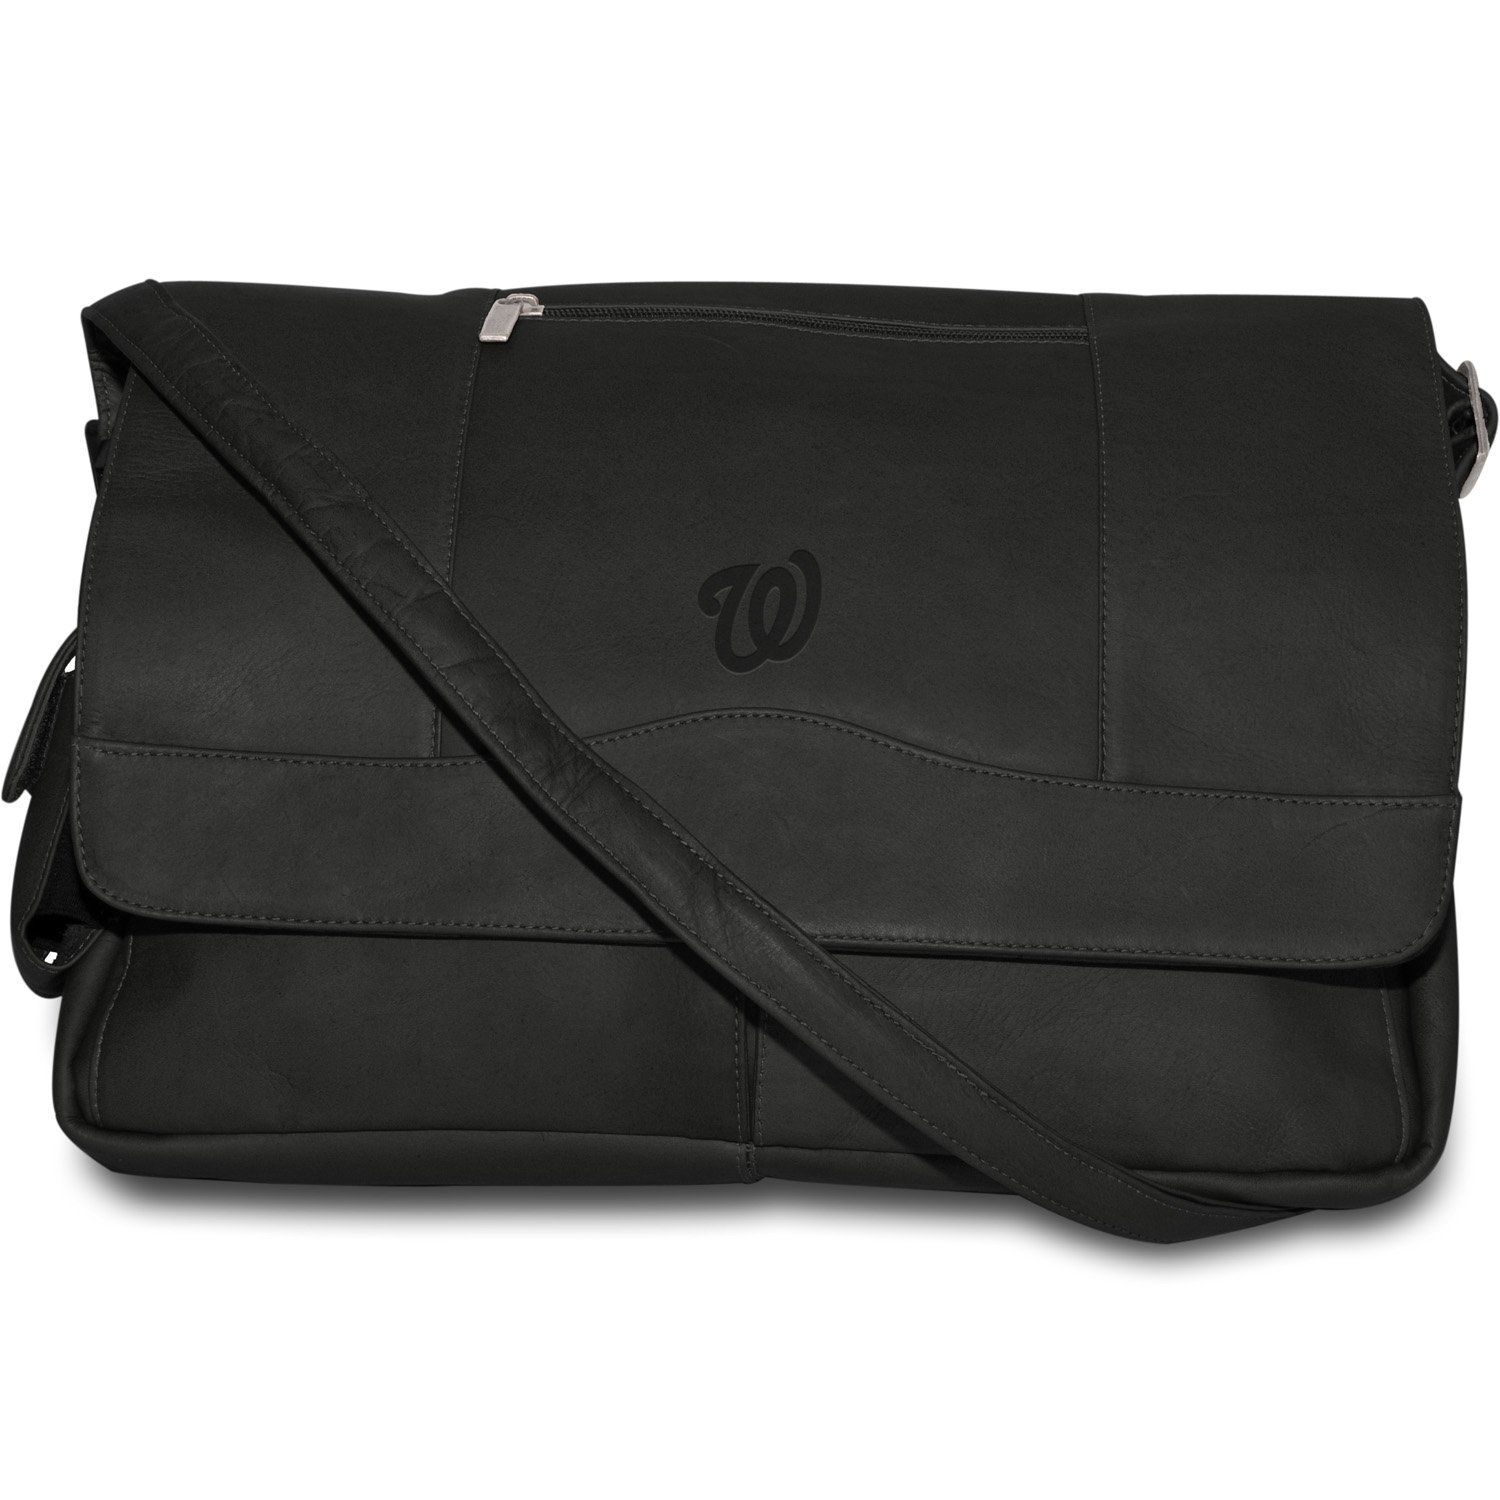 Pangea Brands MLB Schwarz Leder Laptop Messenger Bag